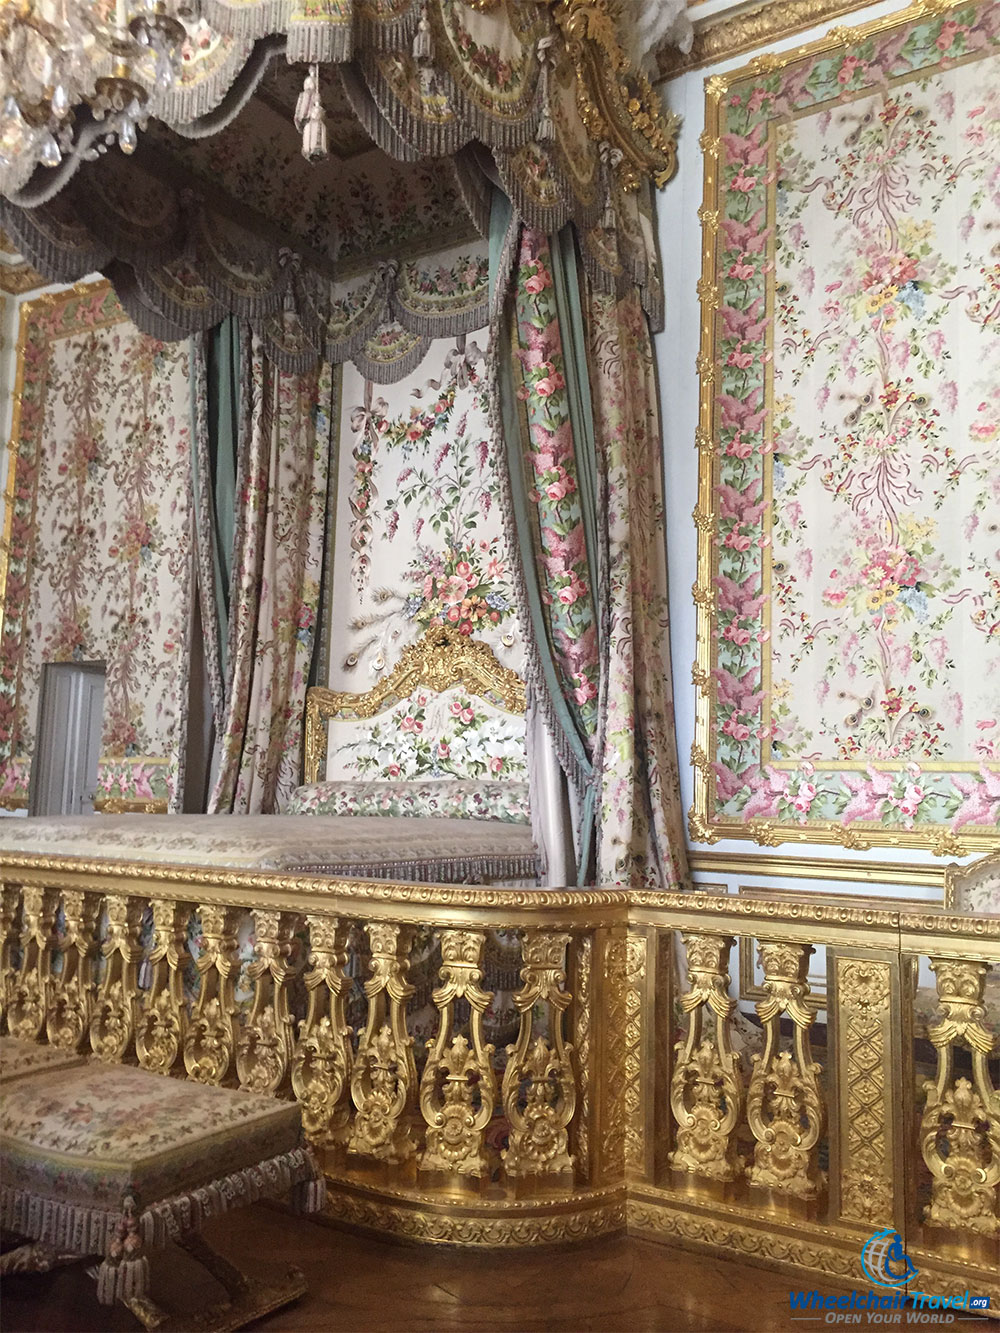 PHOTO DESCRIPTION: Bed with floral drapes extending from the ceiling.